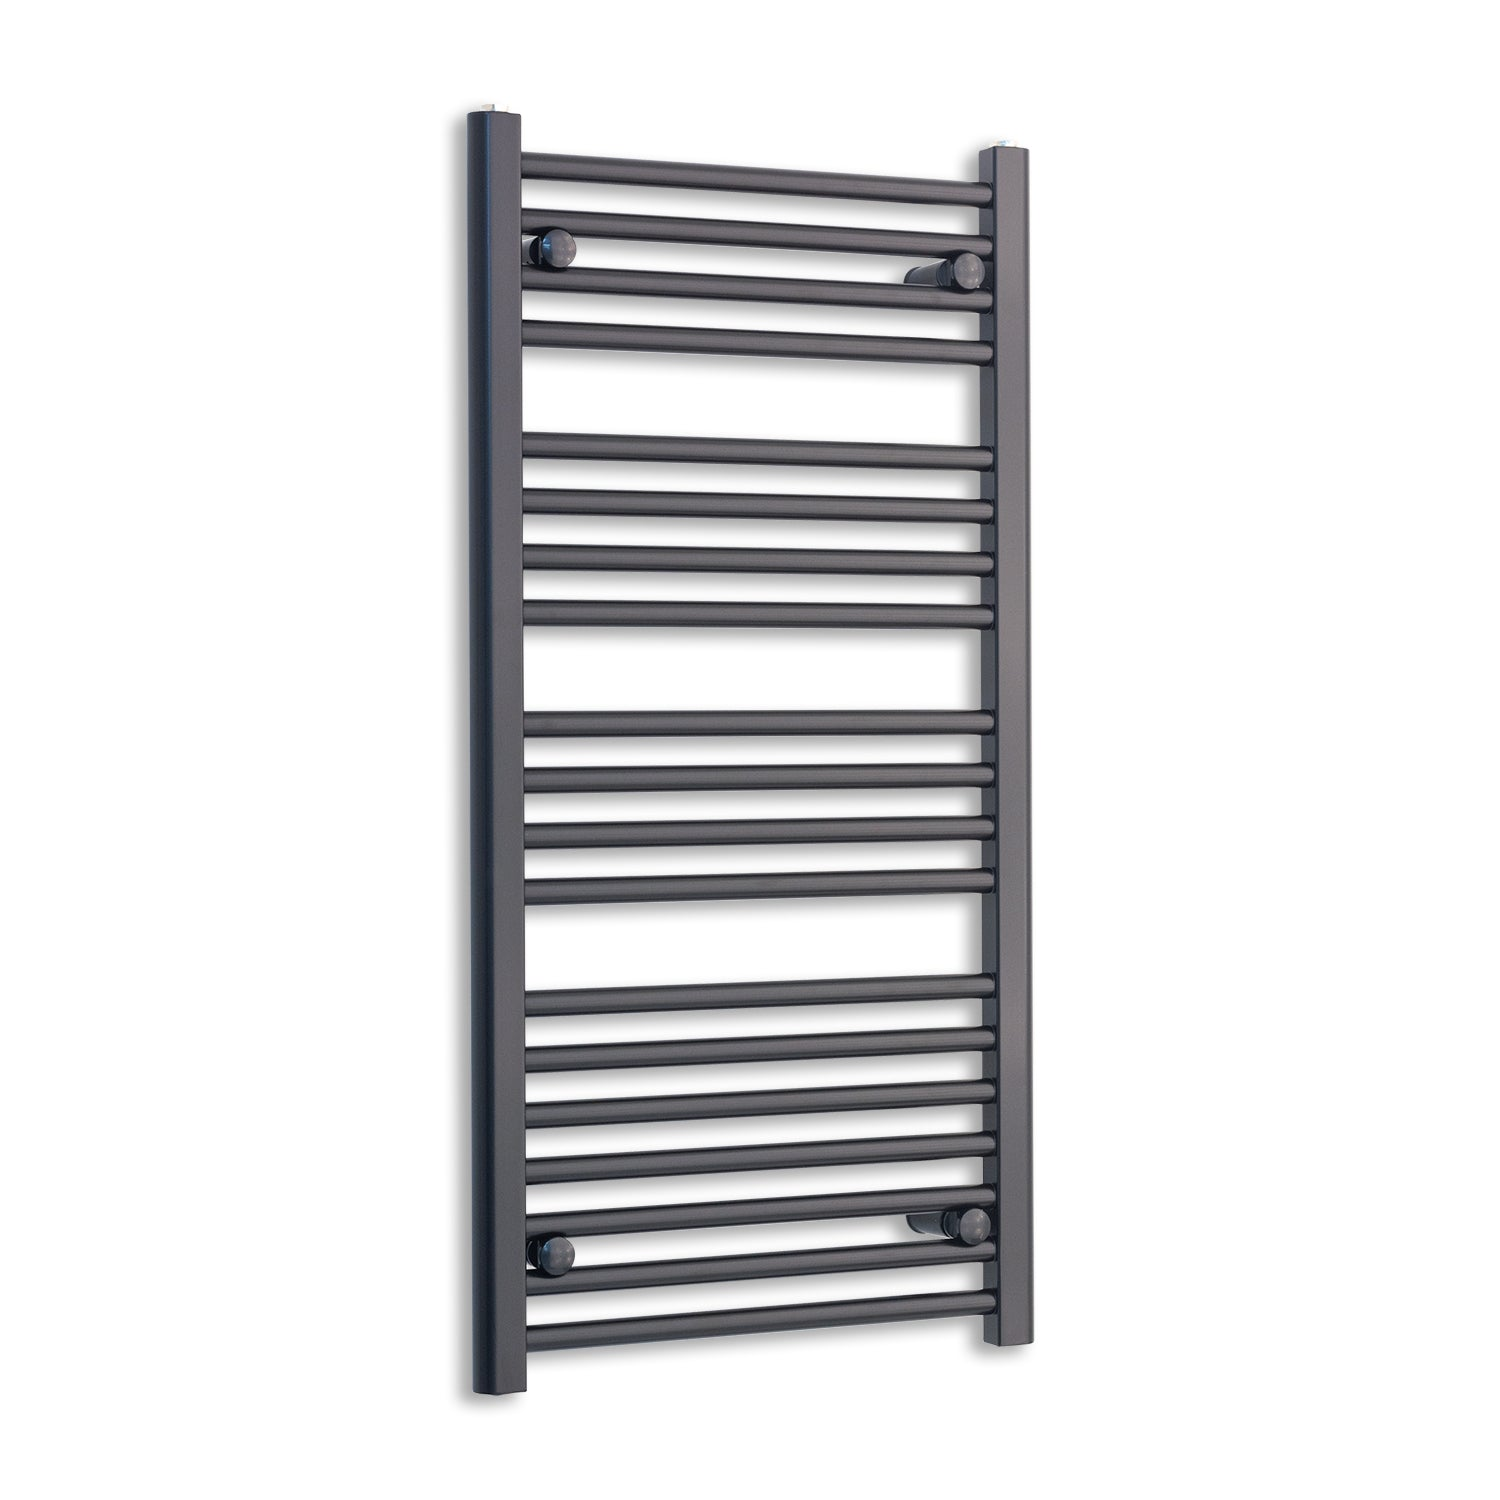 600mm Wide 1000mm High Flat Black Heated Towel Rail Radiator,Towel Rail Only